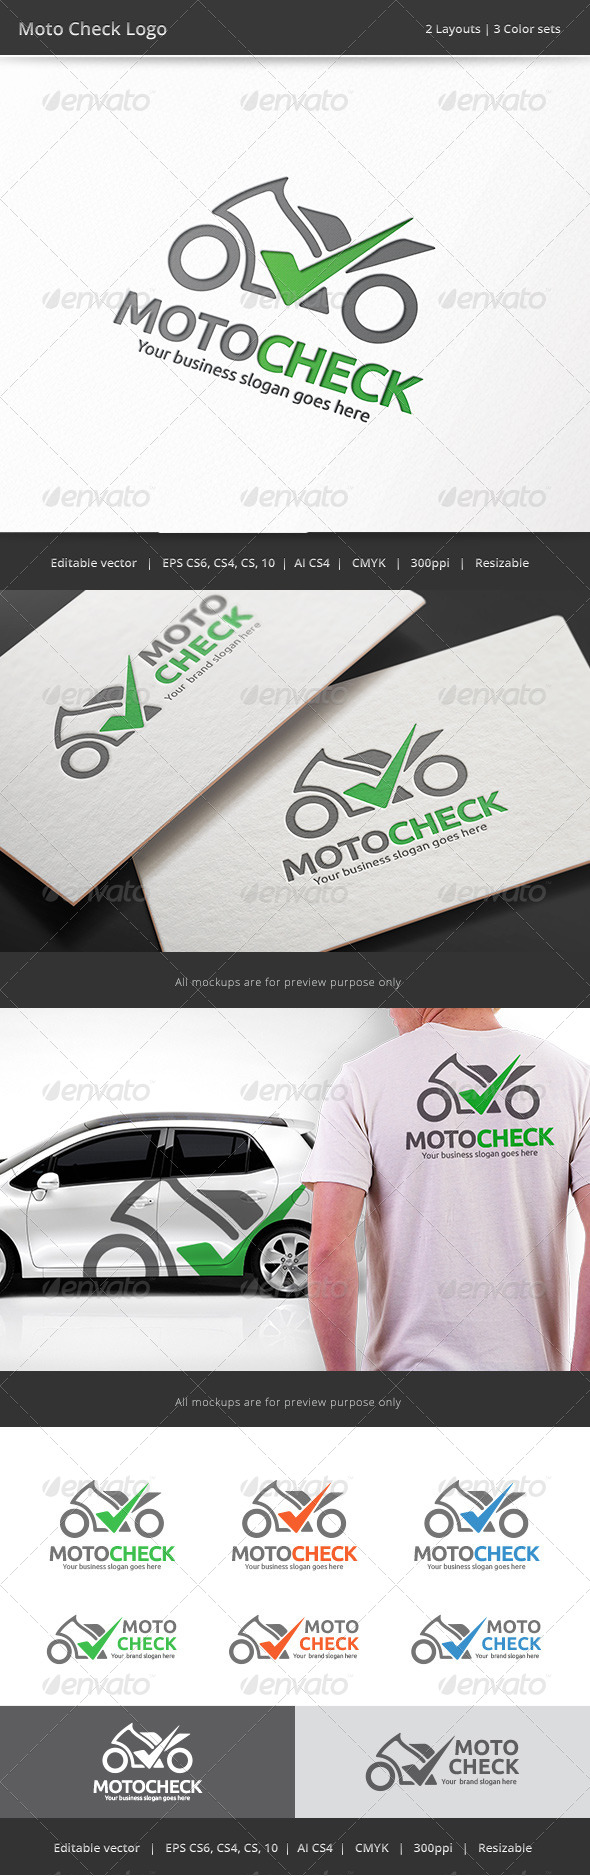 GraphicRiver Motorcycle Check Logo 8687008